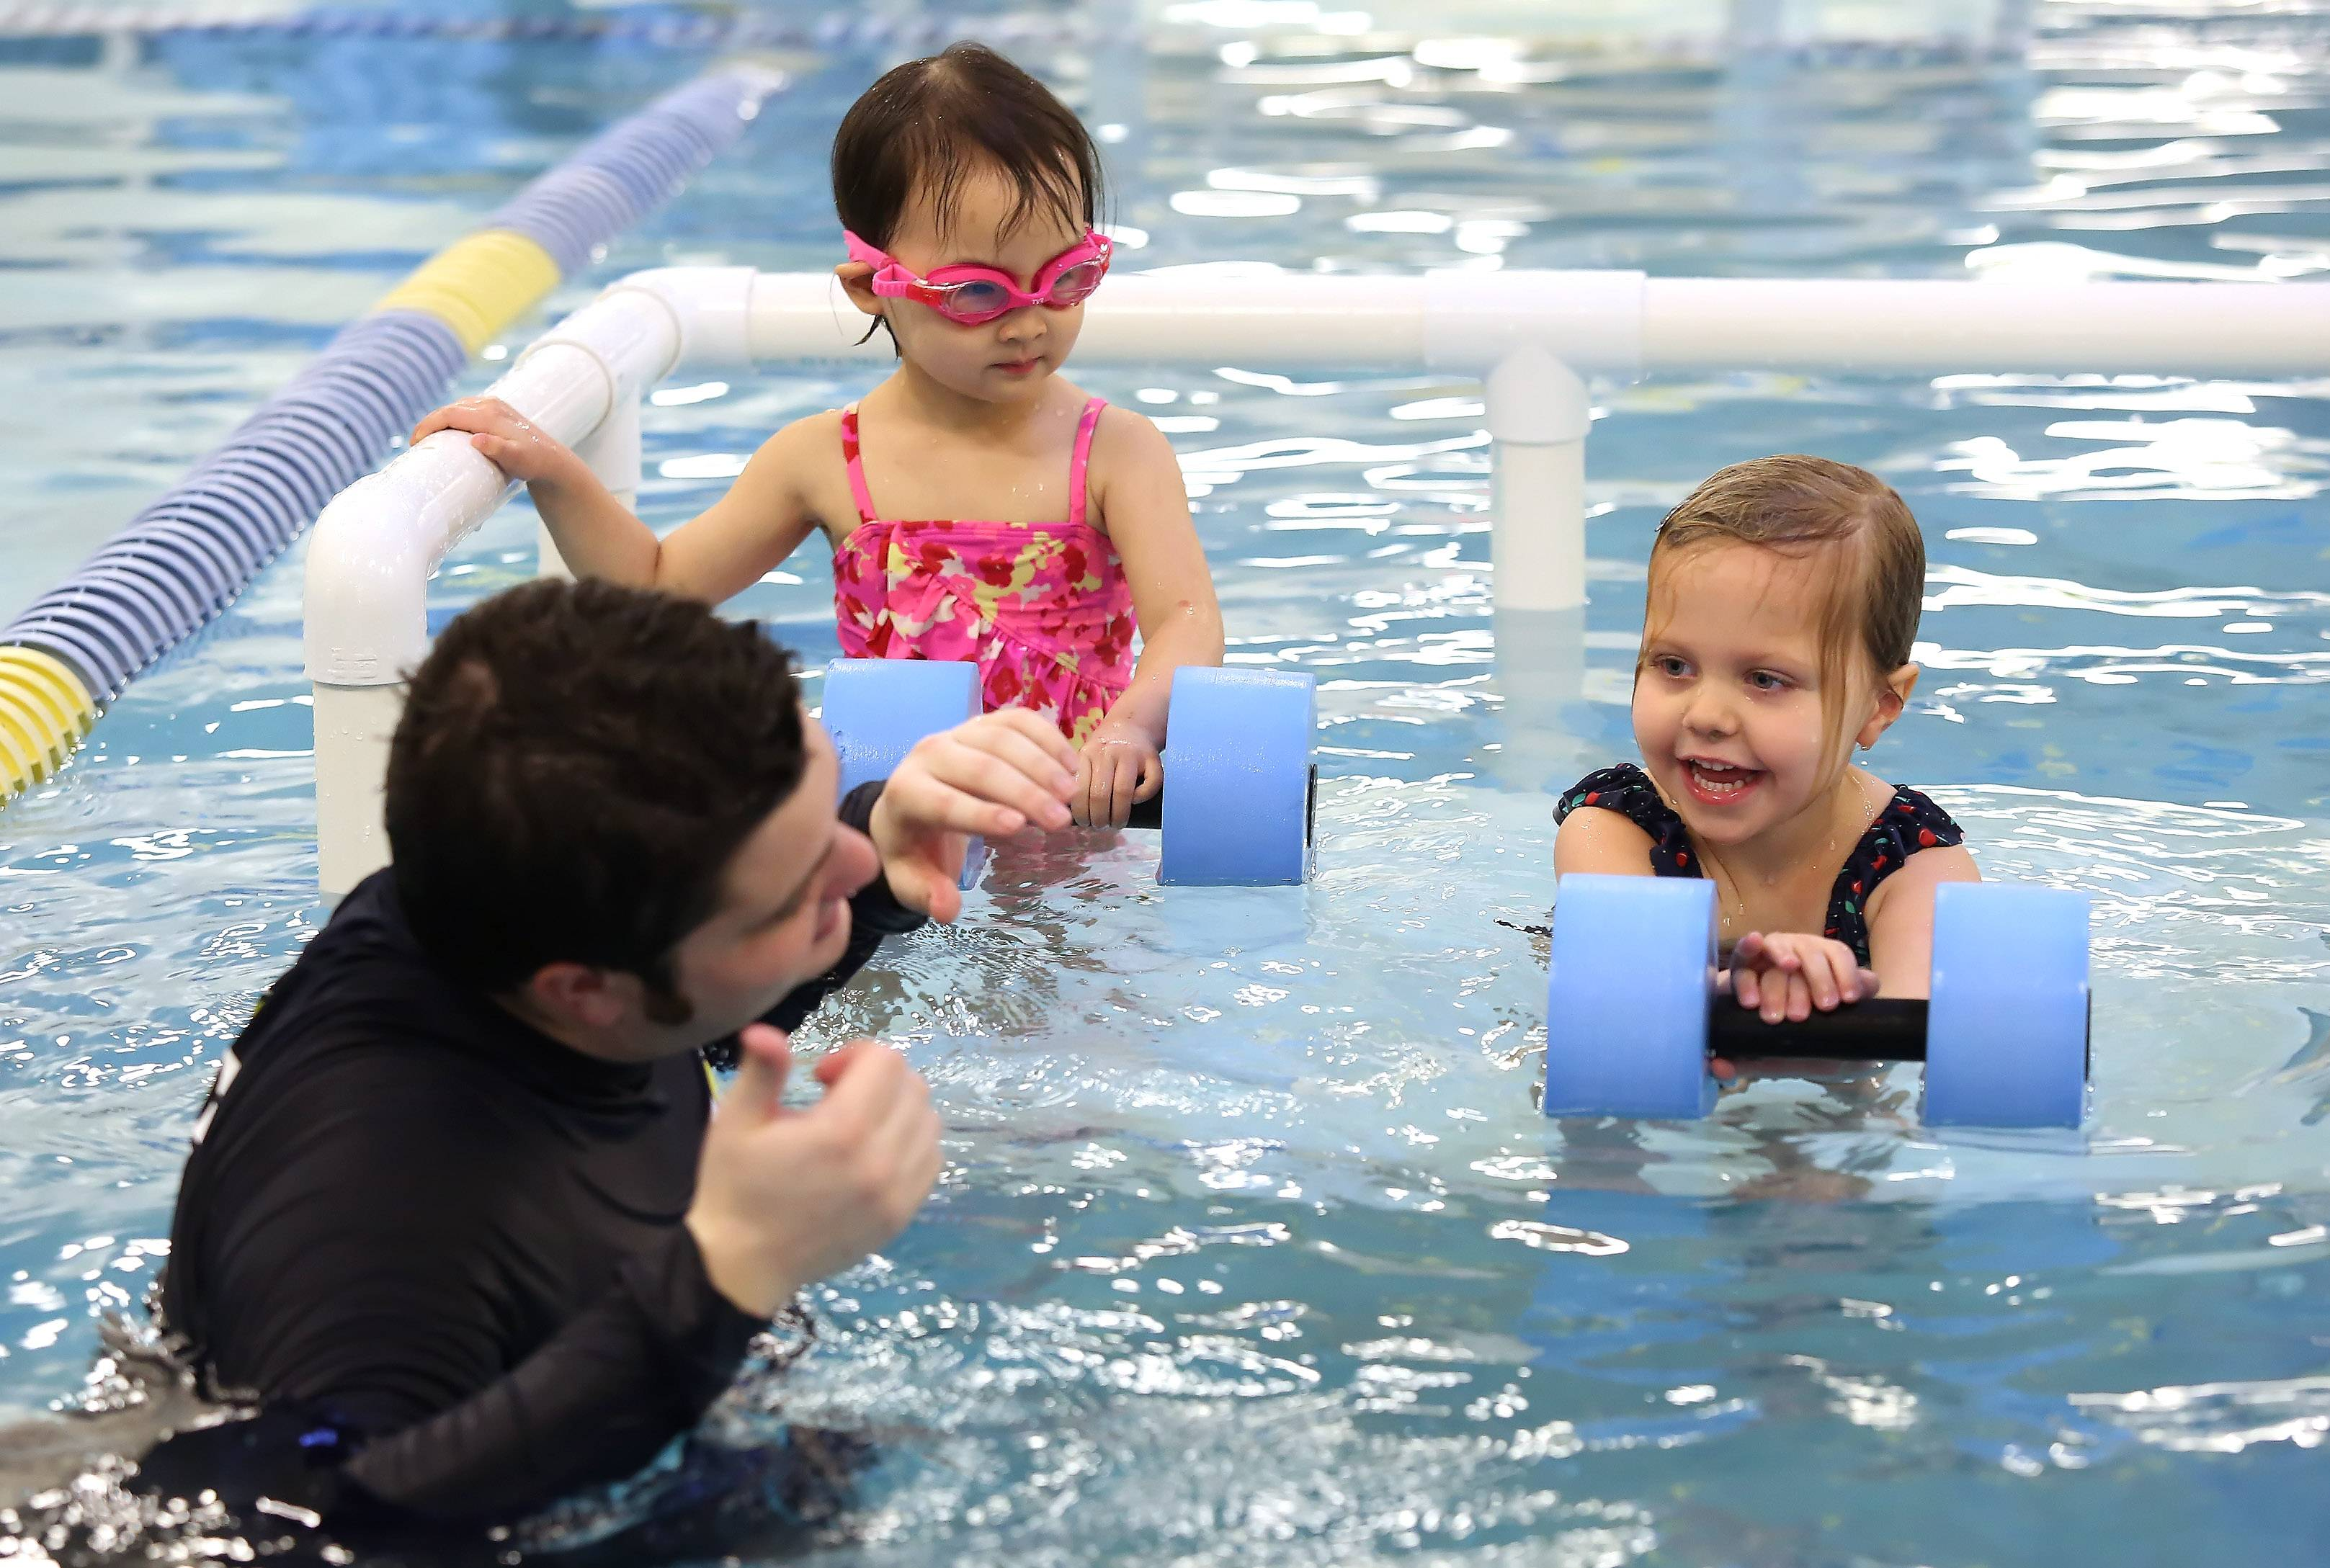 Youngsters Sarah Sapienza, 4, right, and Annabel Chung, 3, learn to swim from swim instructor Andy Jones at FOSS Swim School in Highland Park.